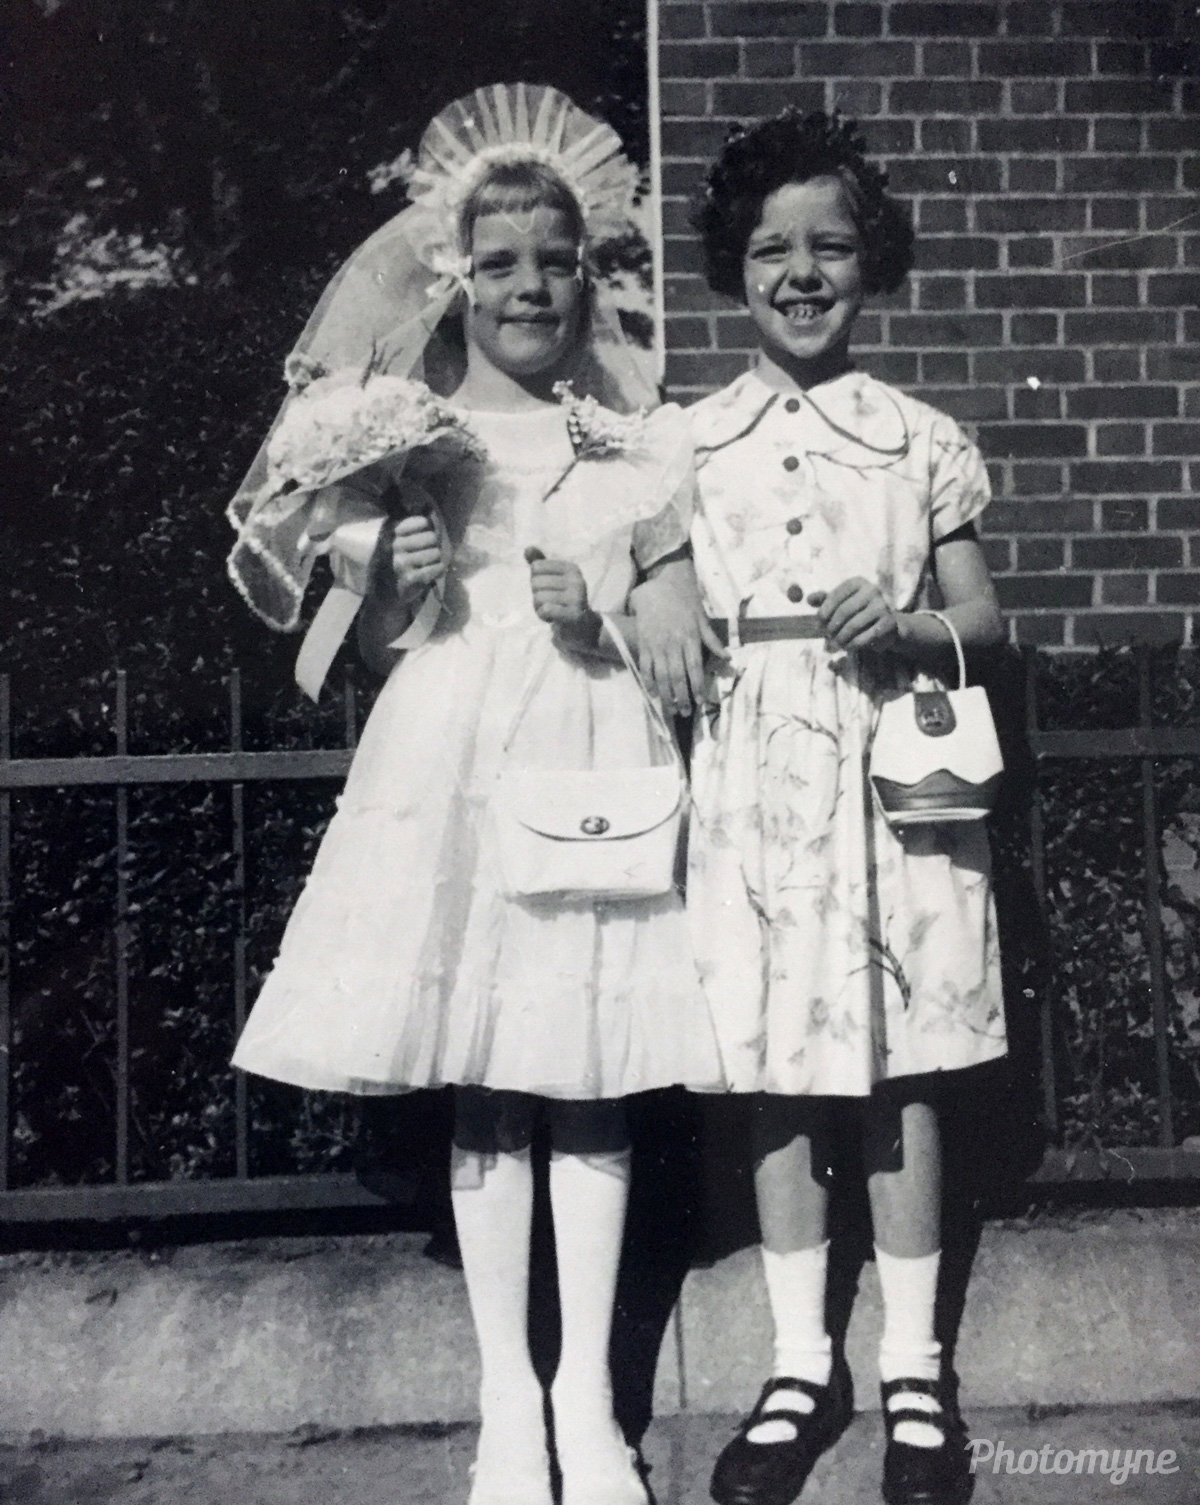 Sisters, Brooklyn, New York, United States, 1955